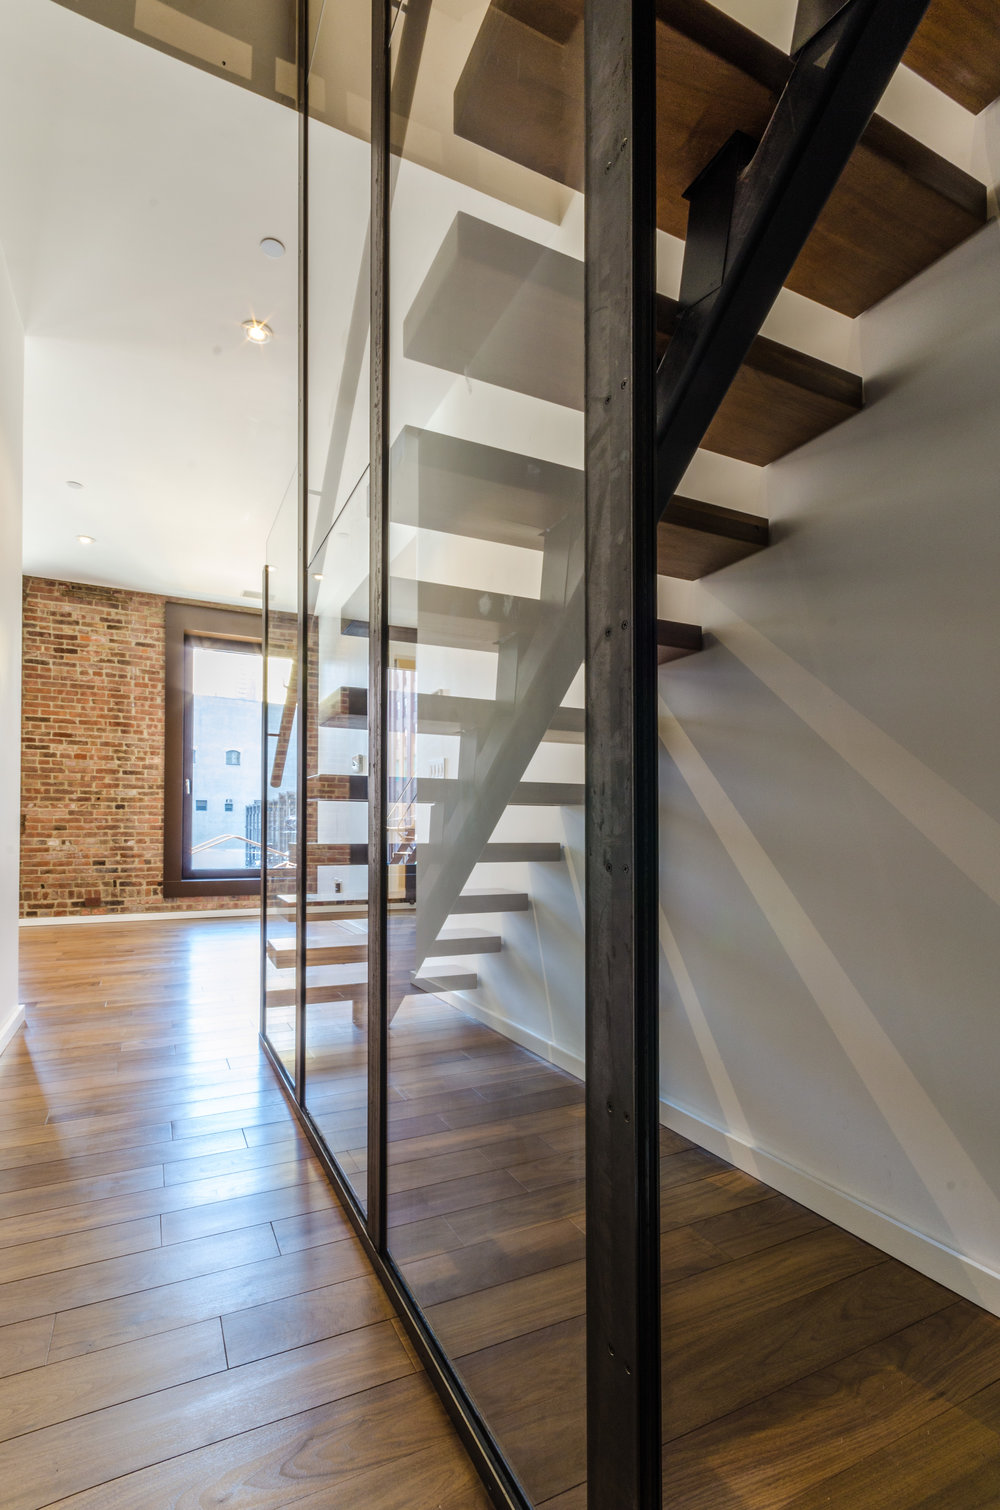 TRAstudio_173WestBroadway_Tribeca_4th Floor Interior_Stair_Glass_Looking Out.jpg